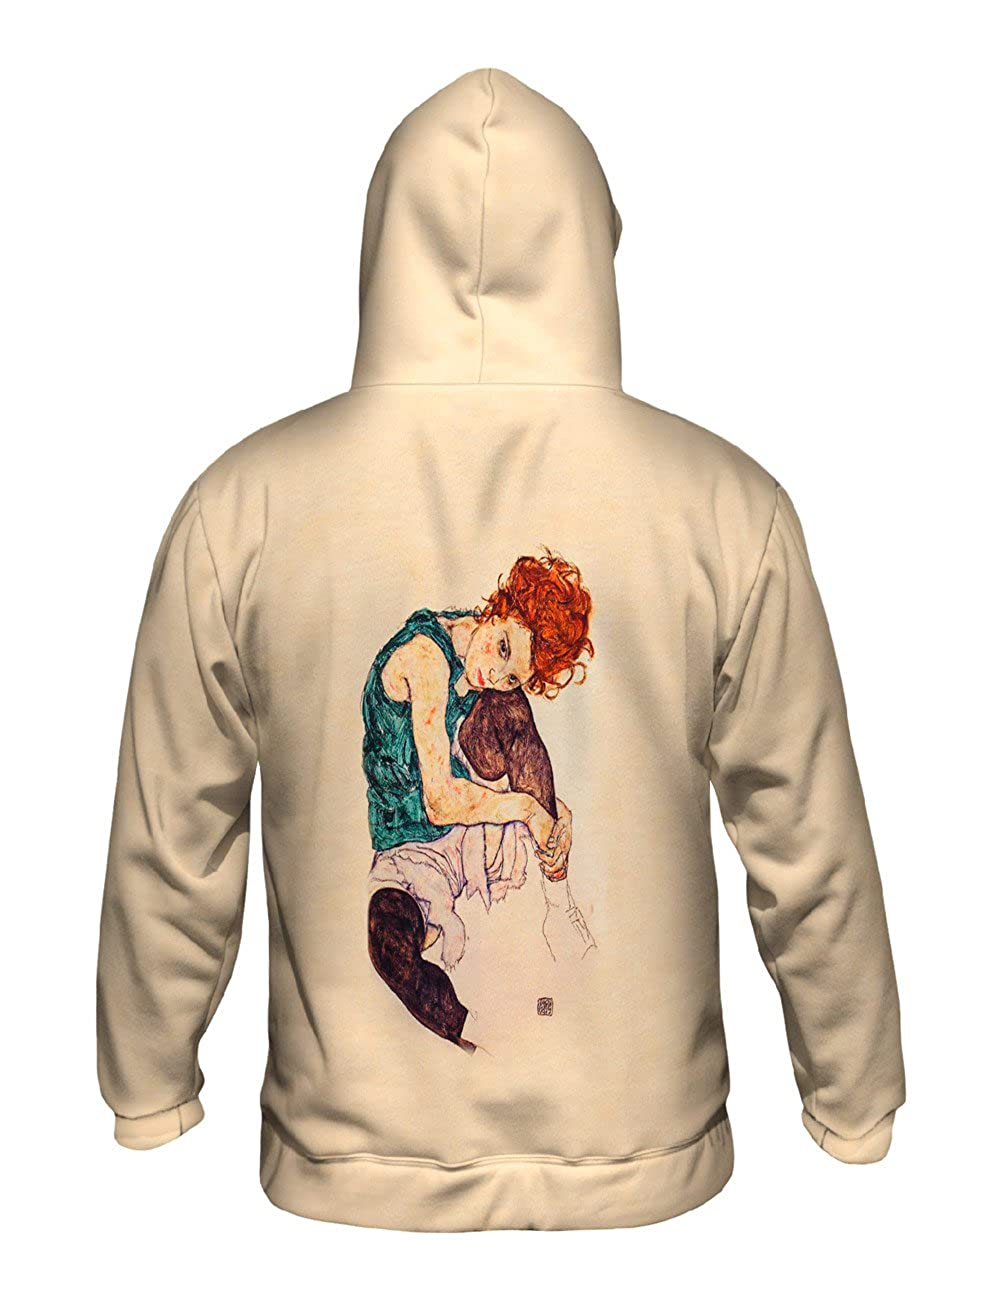 Seated Woman with Allover Print Yizzam Mens Hoodie 1921 Egon Schiele